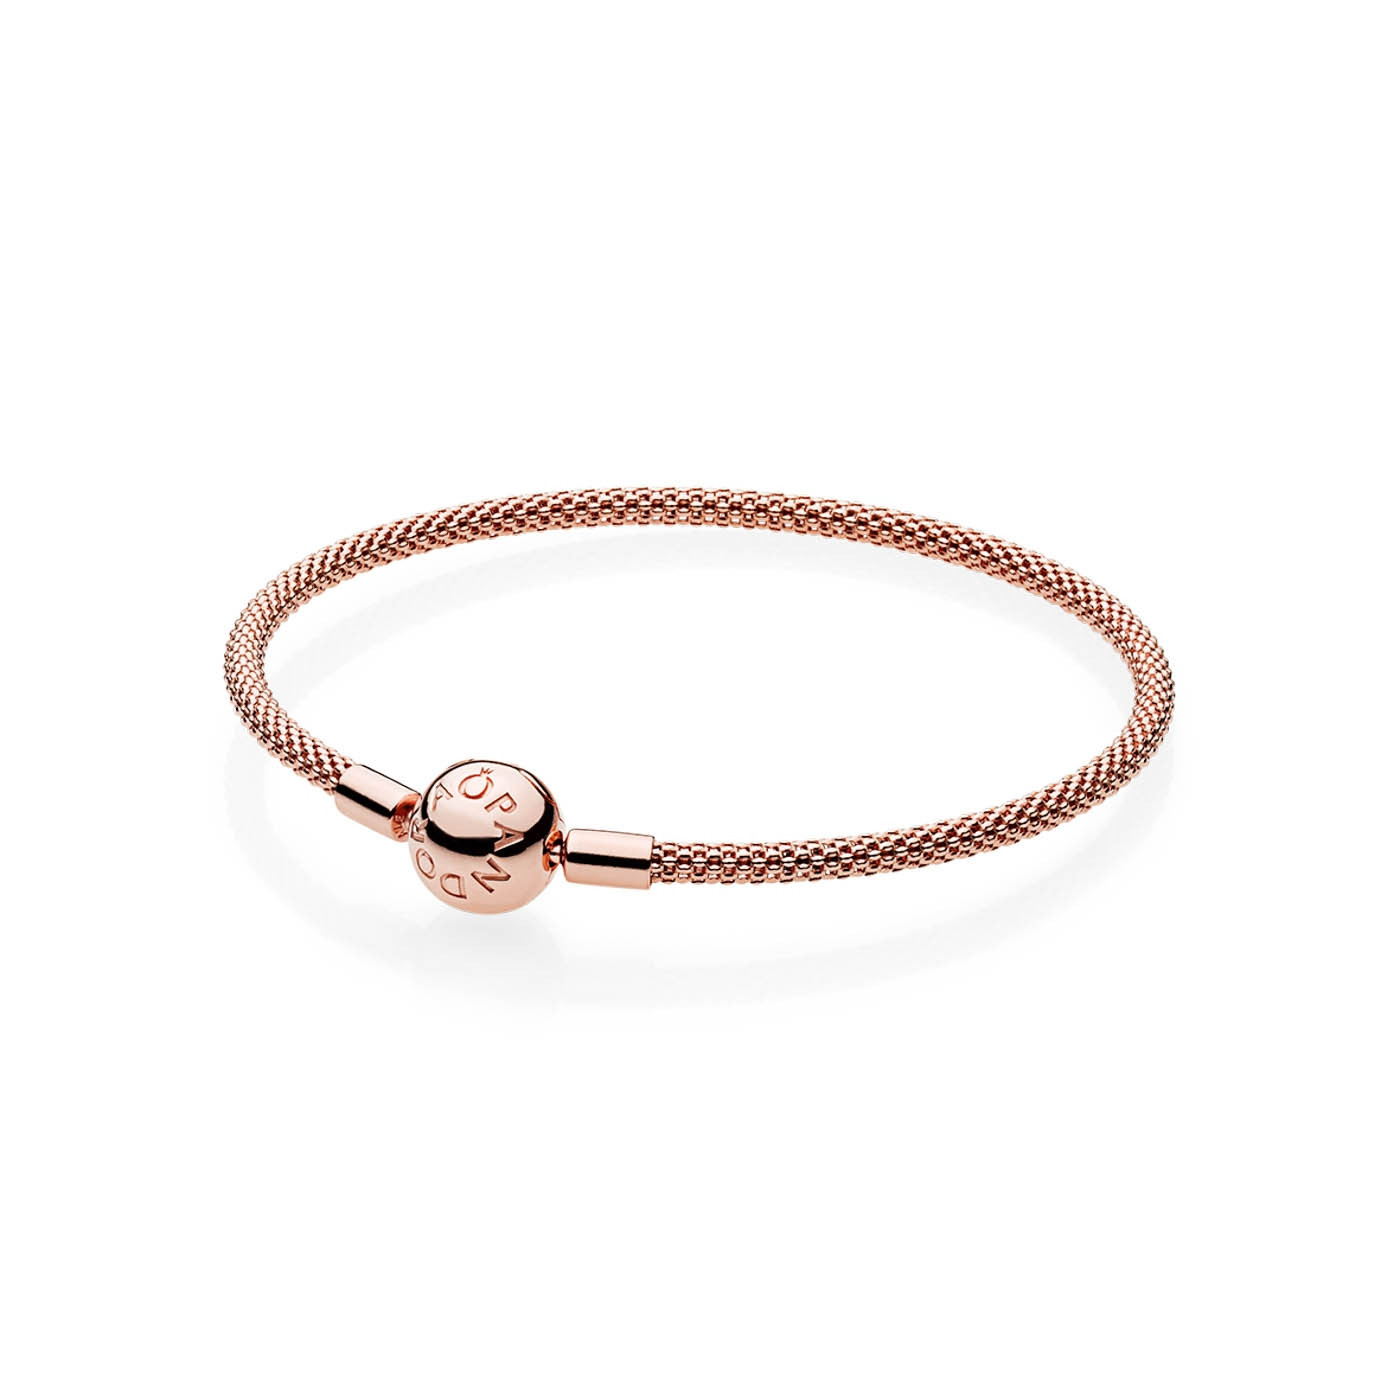 Rose Gold Armband Pandora Moments Rose Gold Colored Bracelet 586543 Length 17 00 21 00 Cm